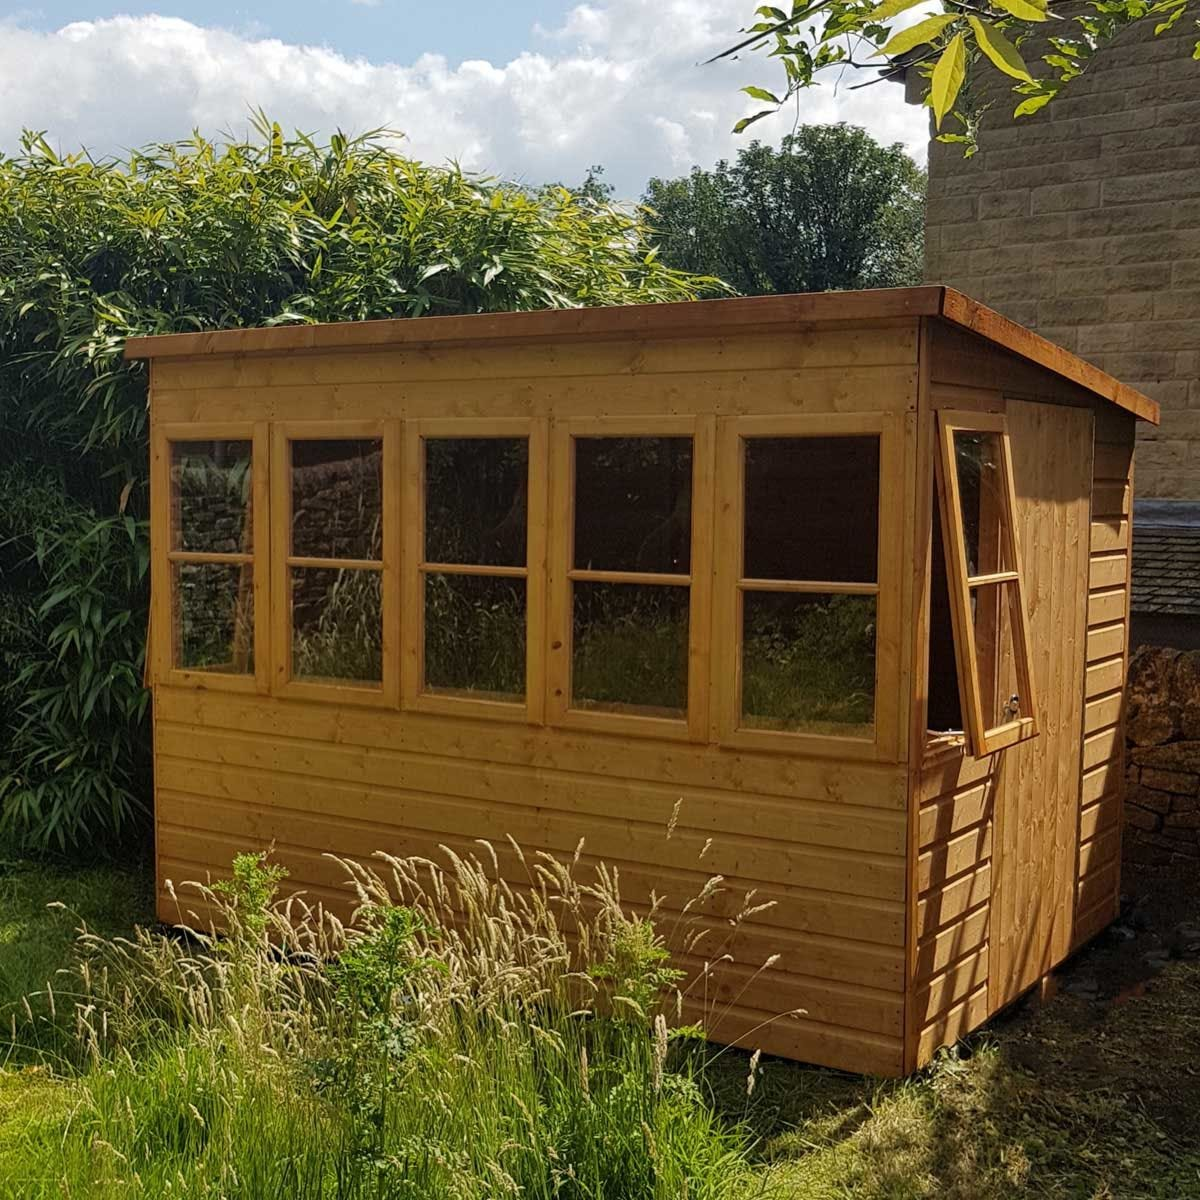 Shire Sun Pent 8' x 8' Shed